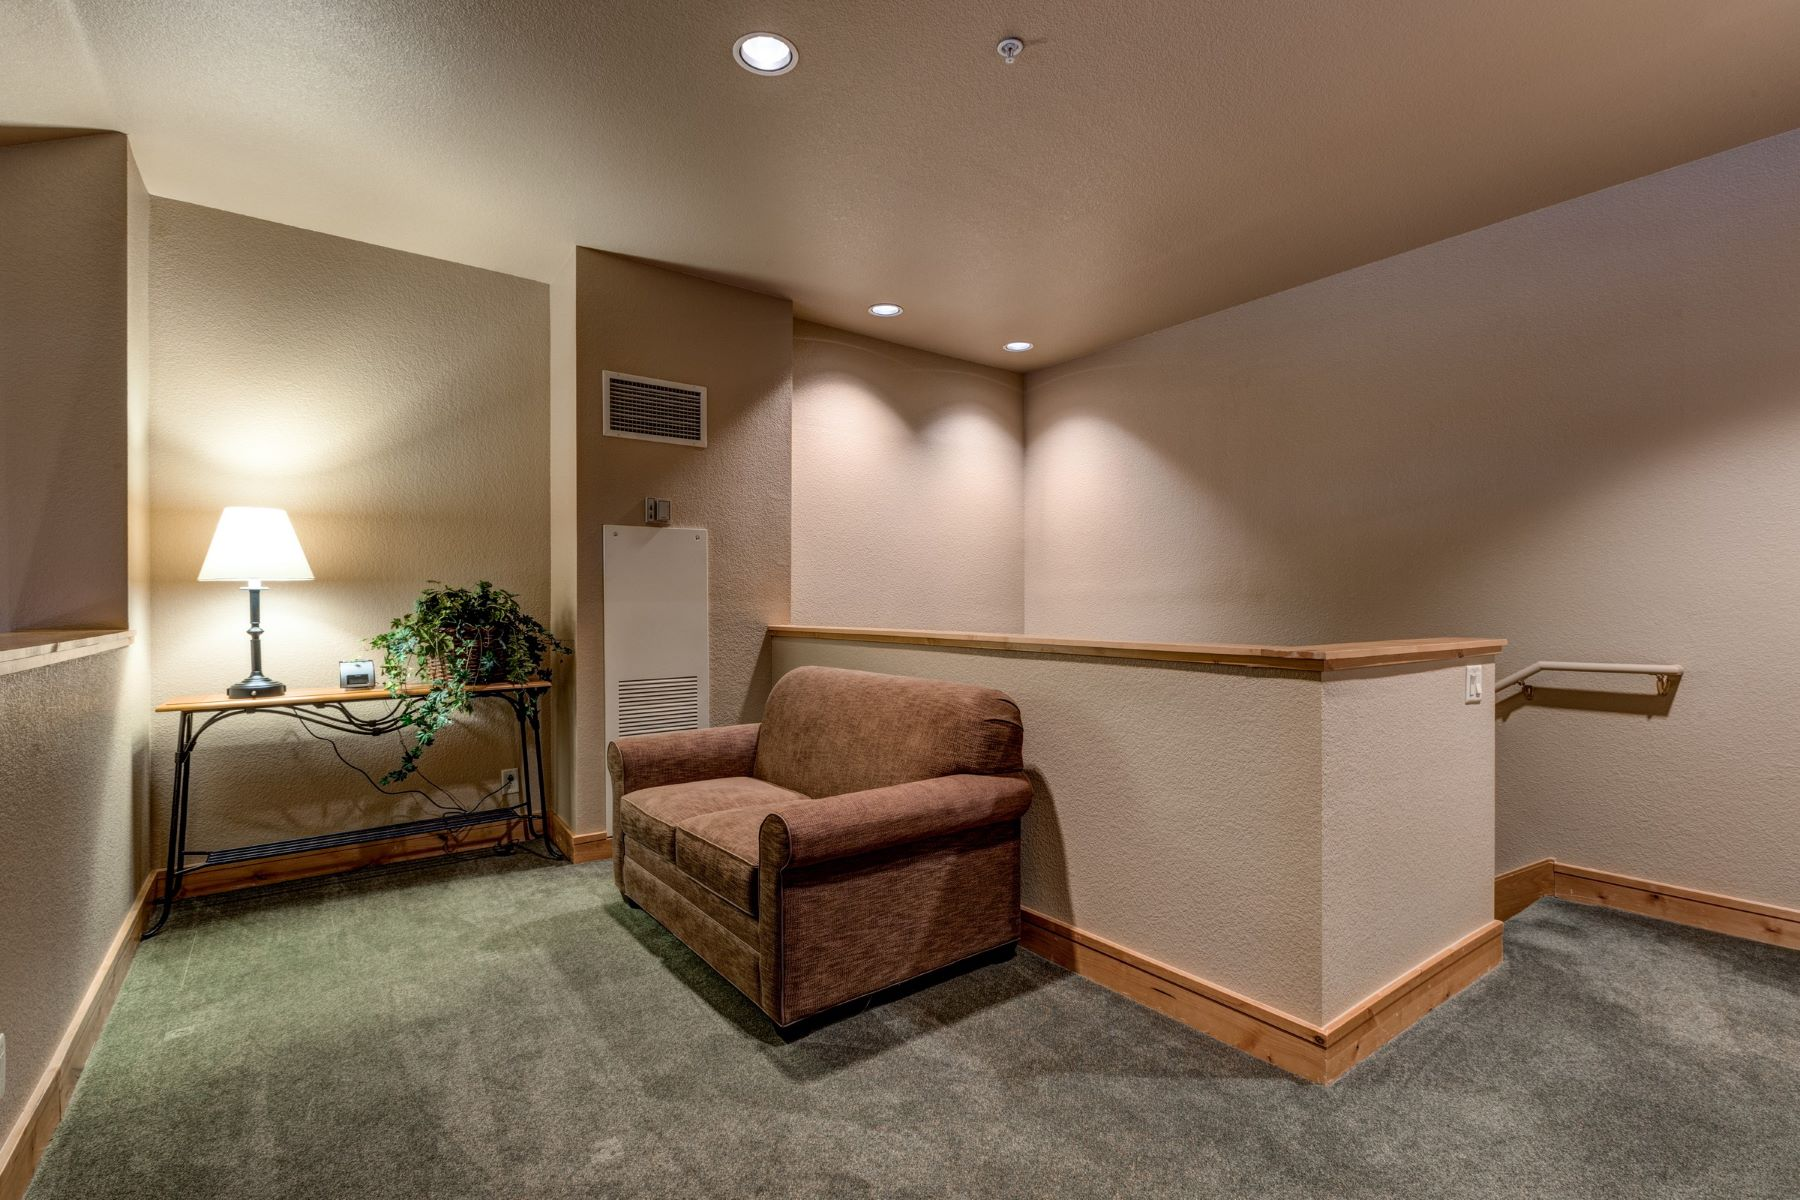 Additional photo for property listing at The Steamboat Grand Resort 2300 Mt Werner Circle 503/504 QIB Steamboat Springs, Colorado 80487 Estados Unidos